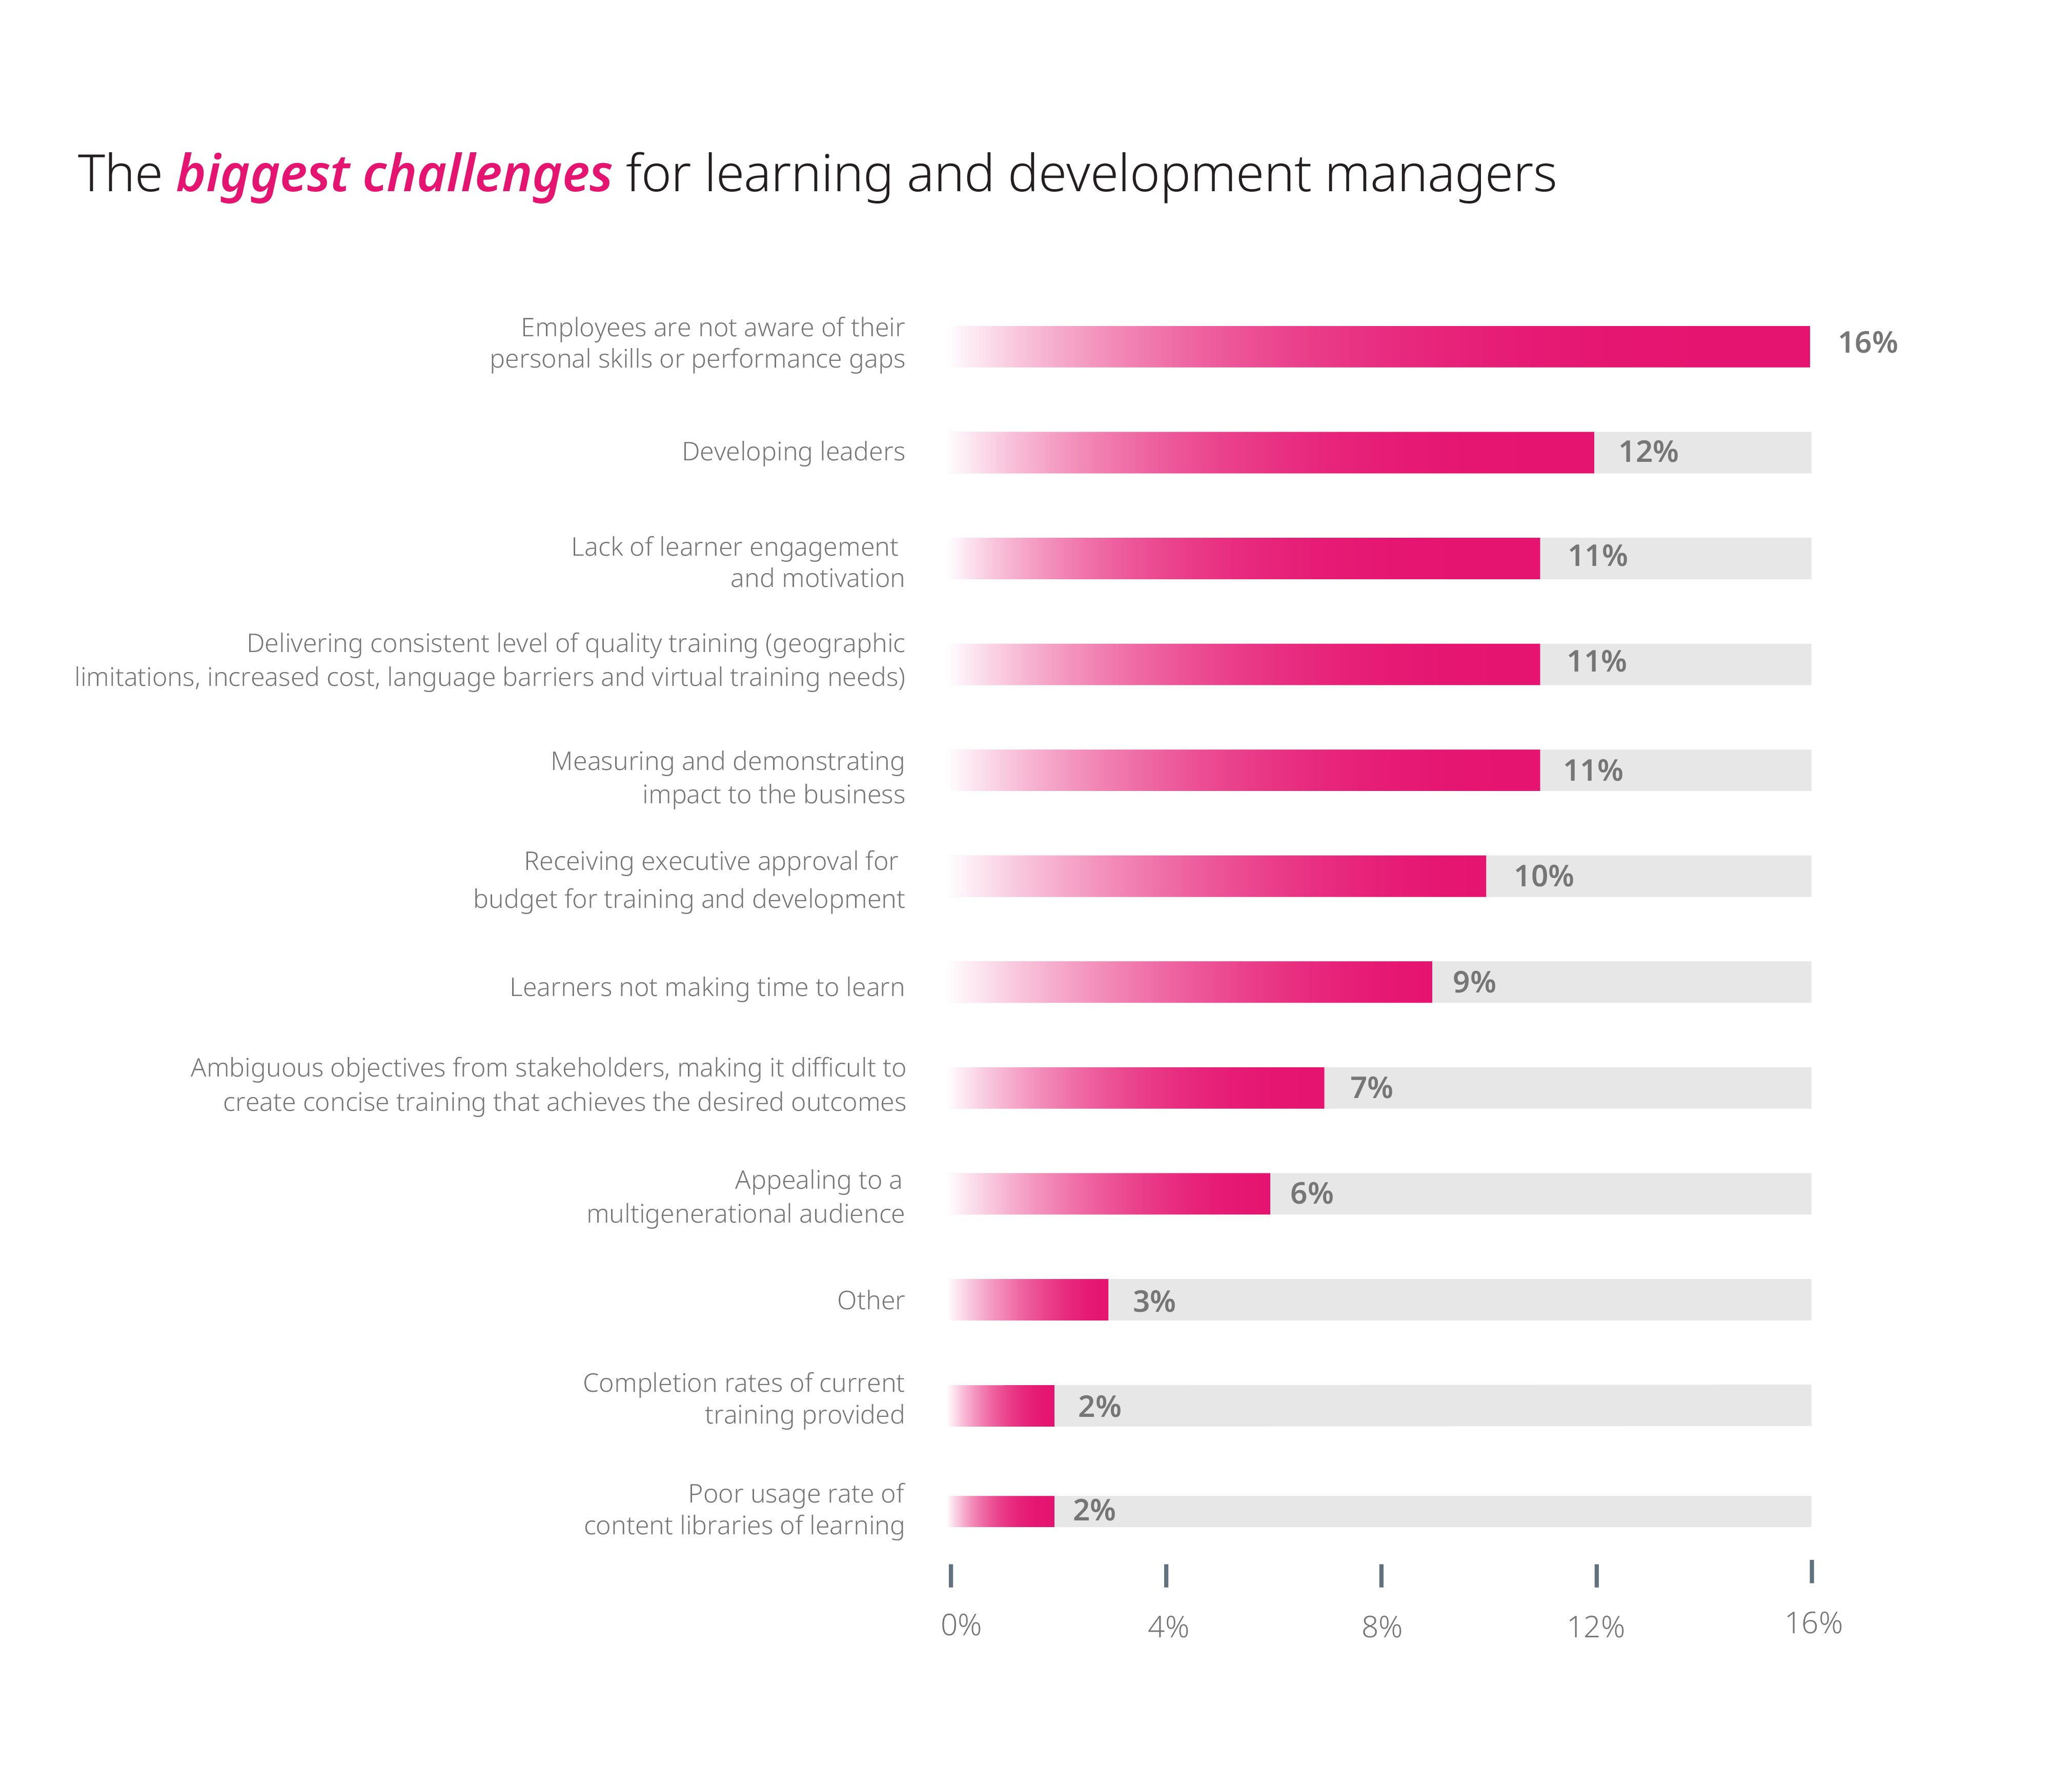 The biggest challenges for learning and development managers